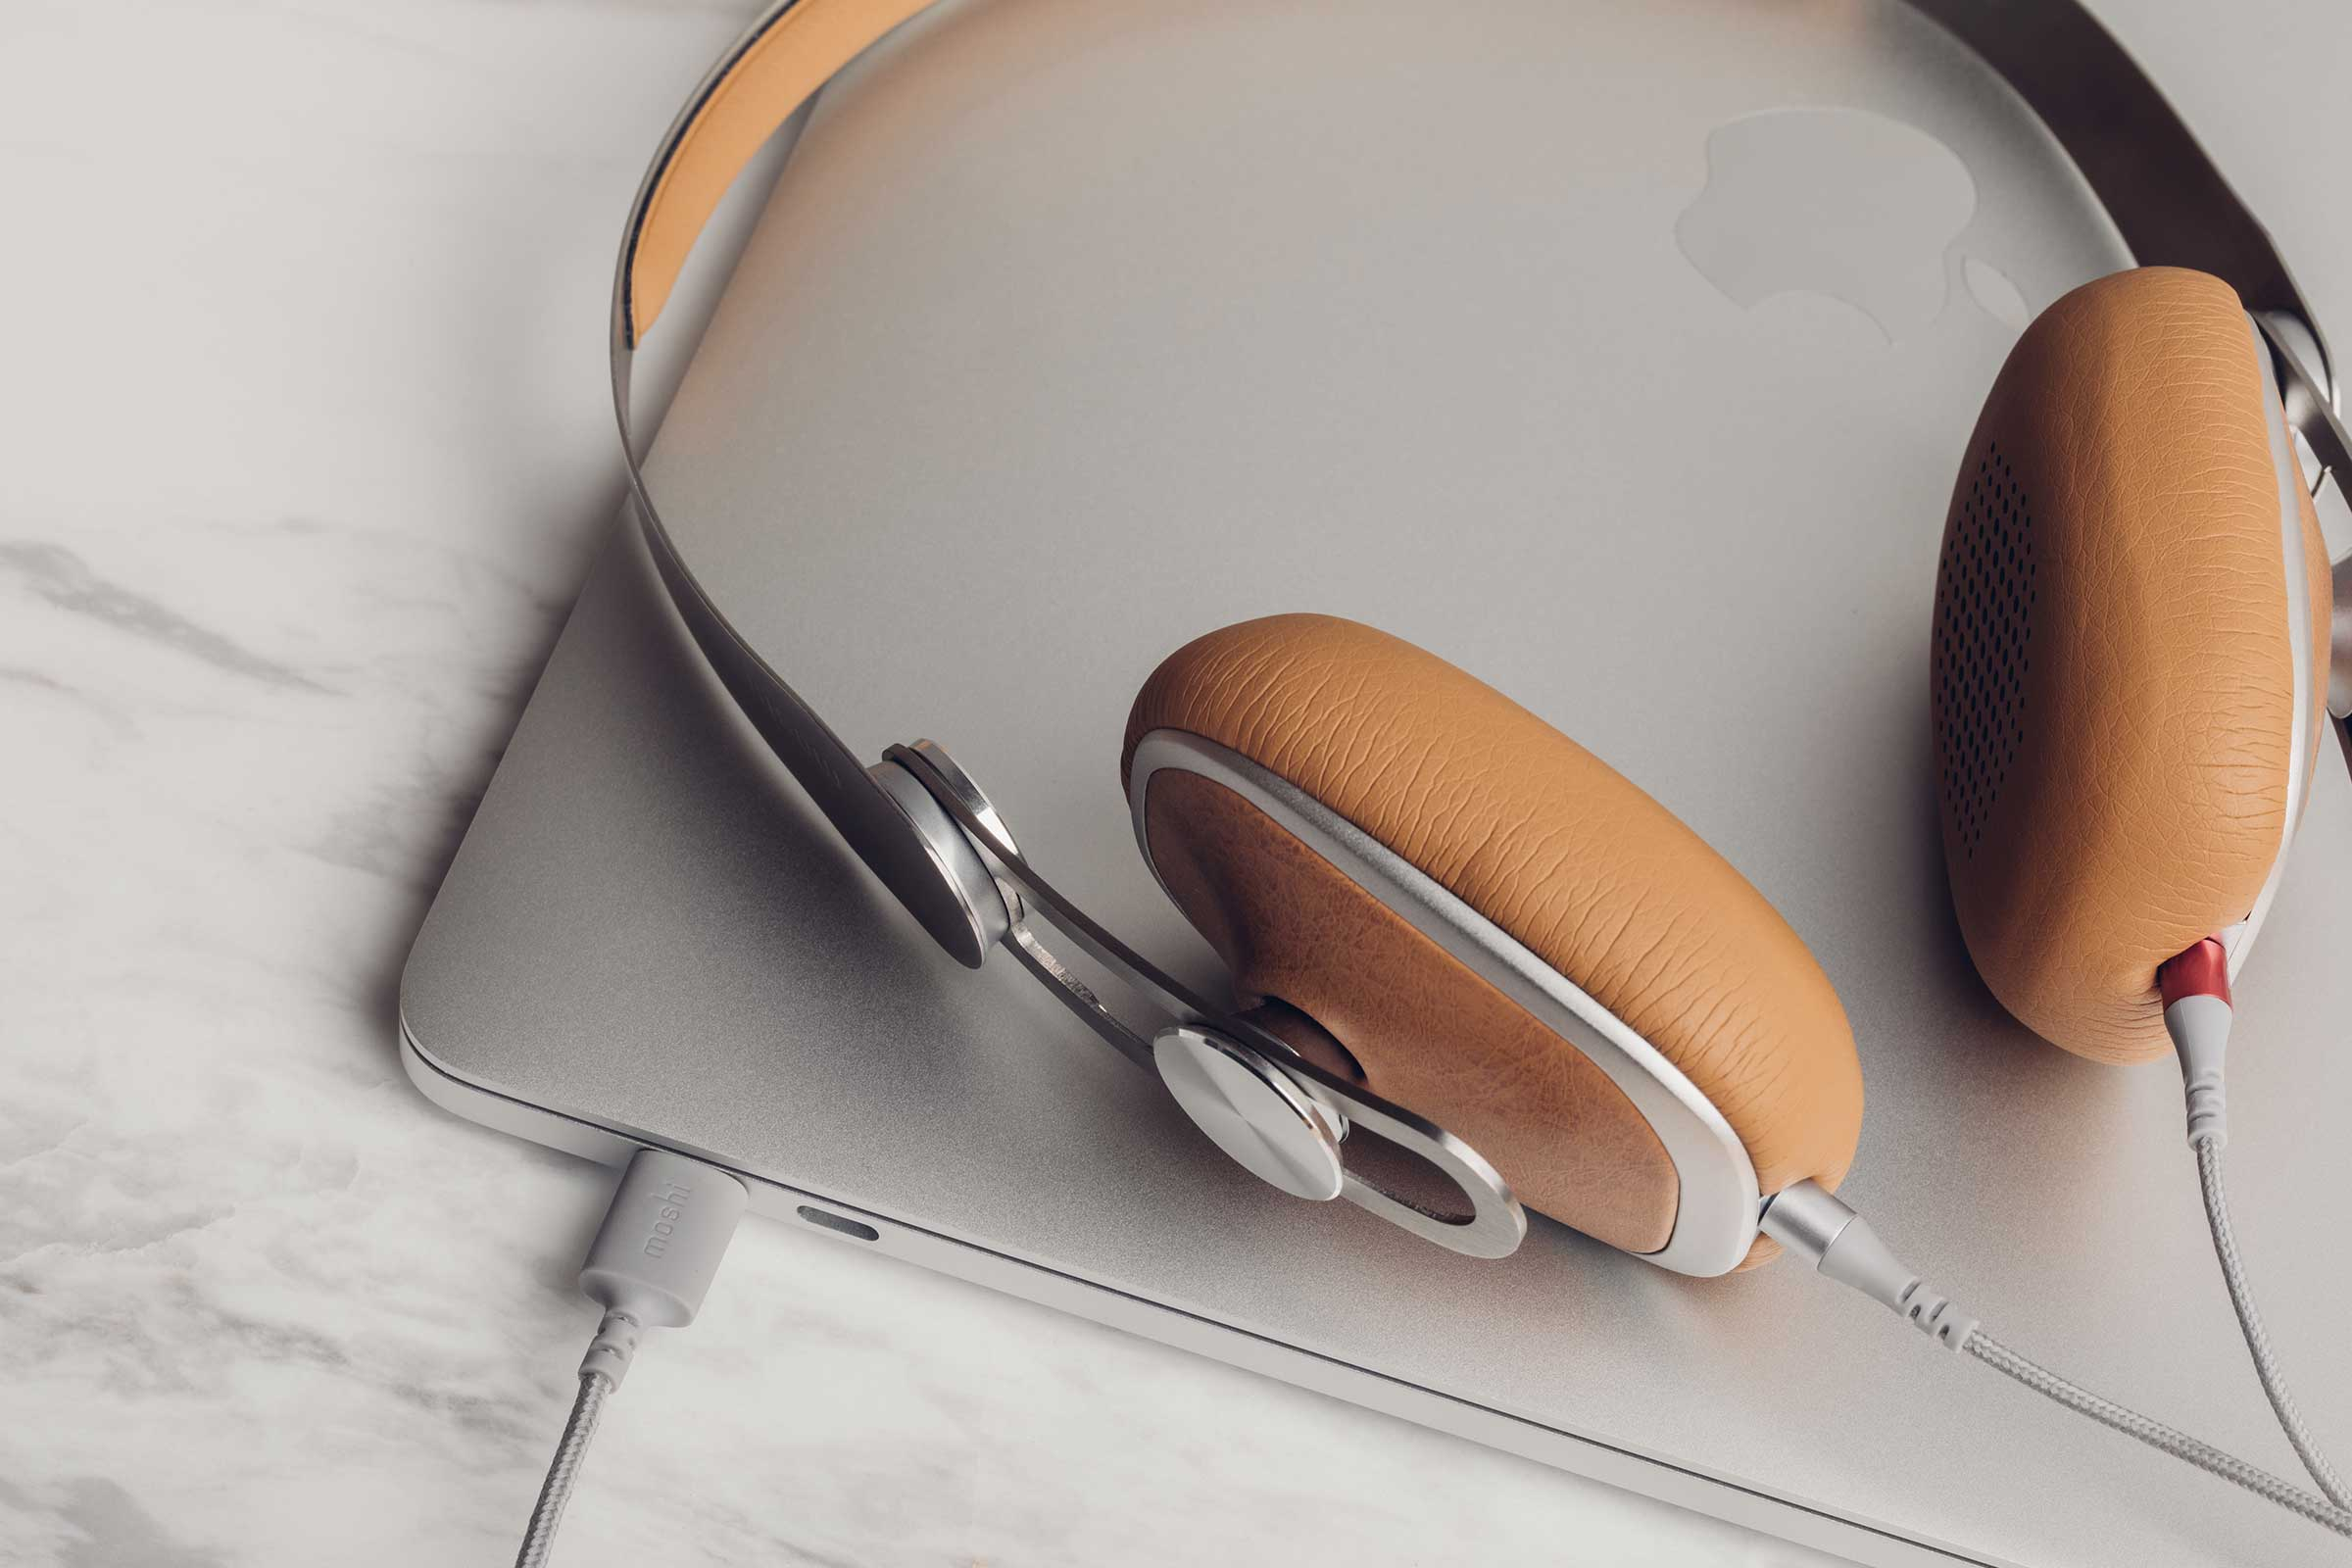 Moshi's Avanti C headphones plugged into a MacBook for high-quality sound.